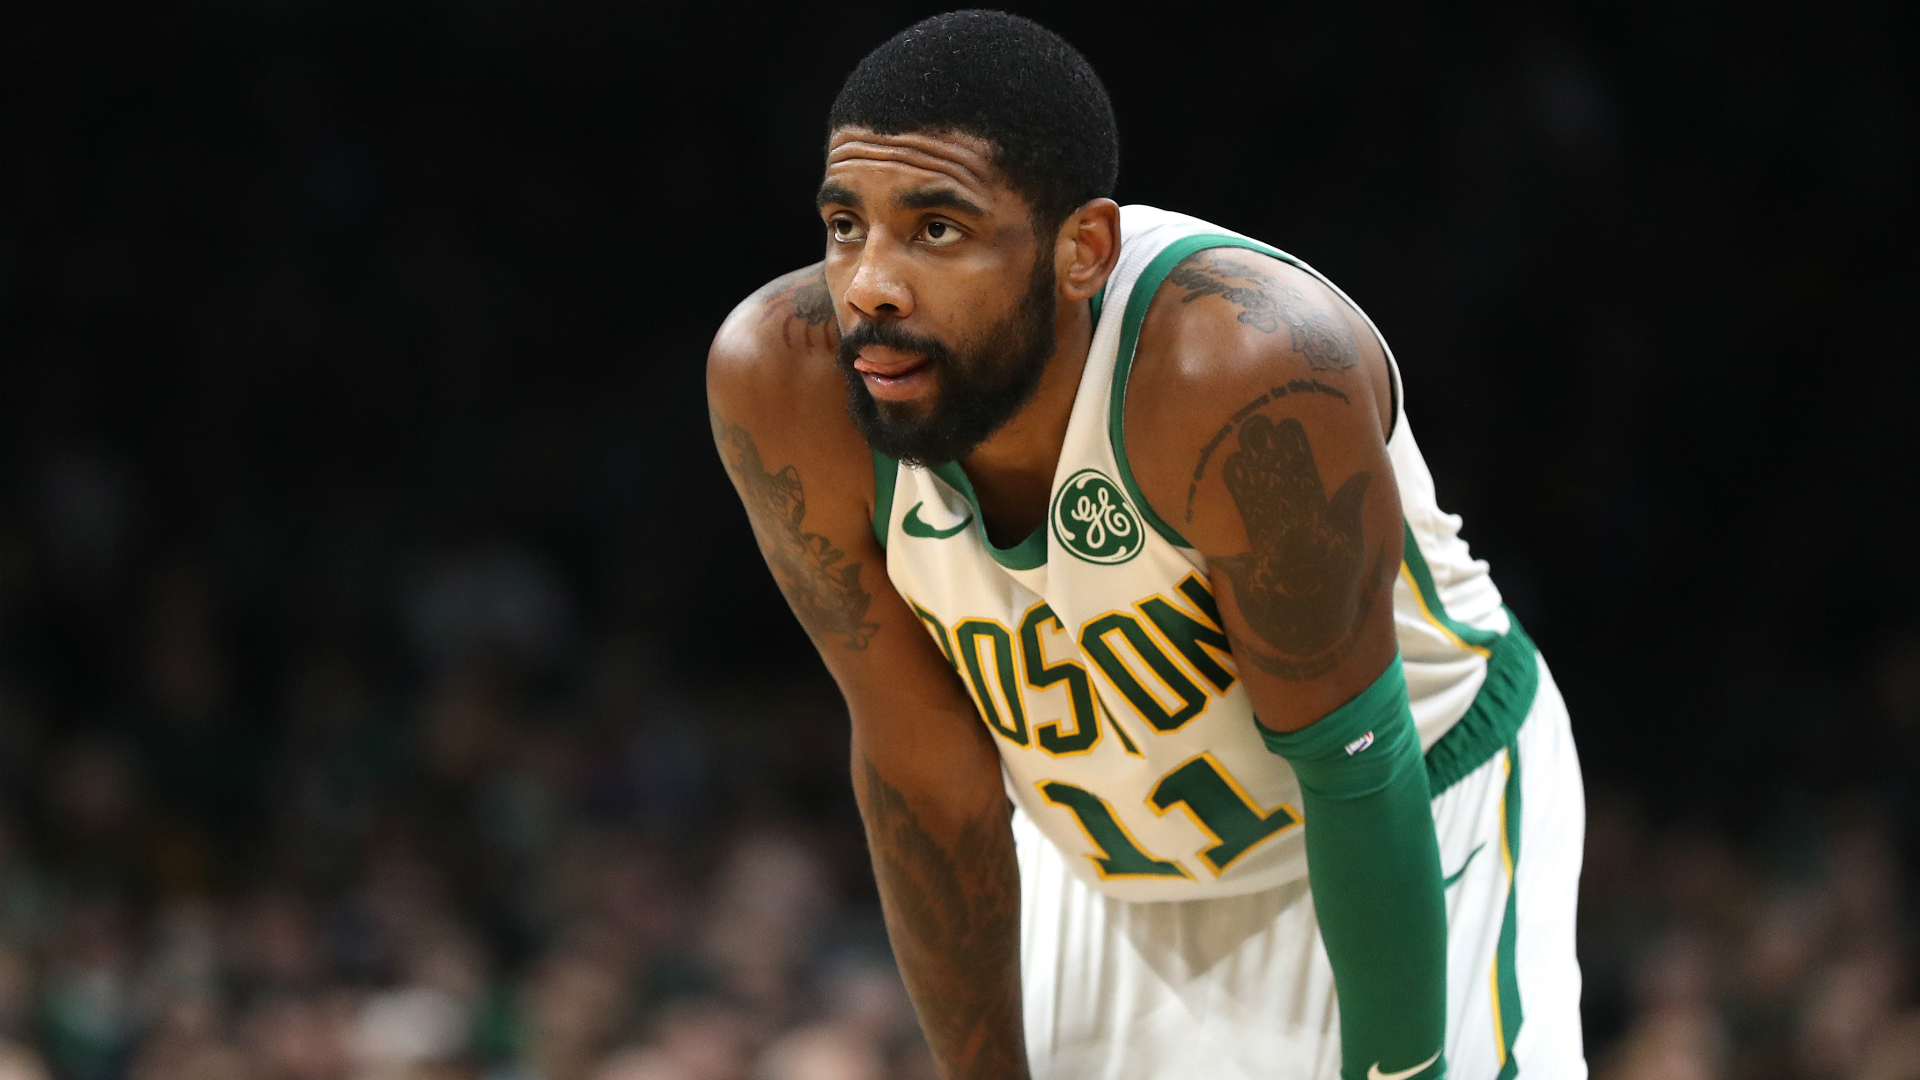 Irving in no mood for media after Celtics loss